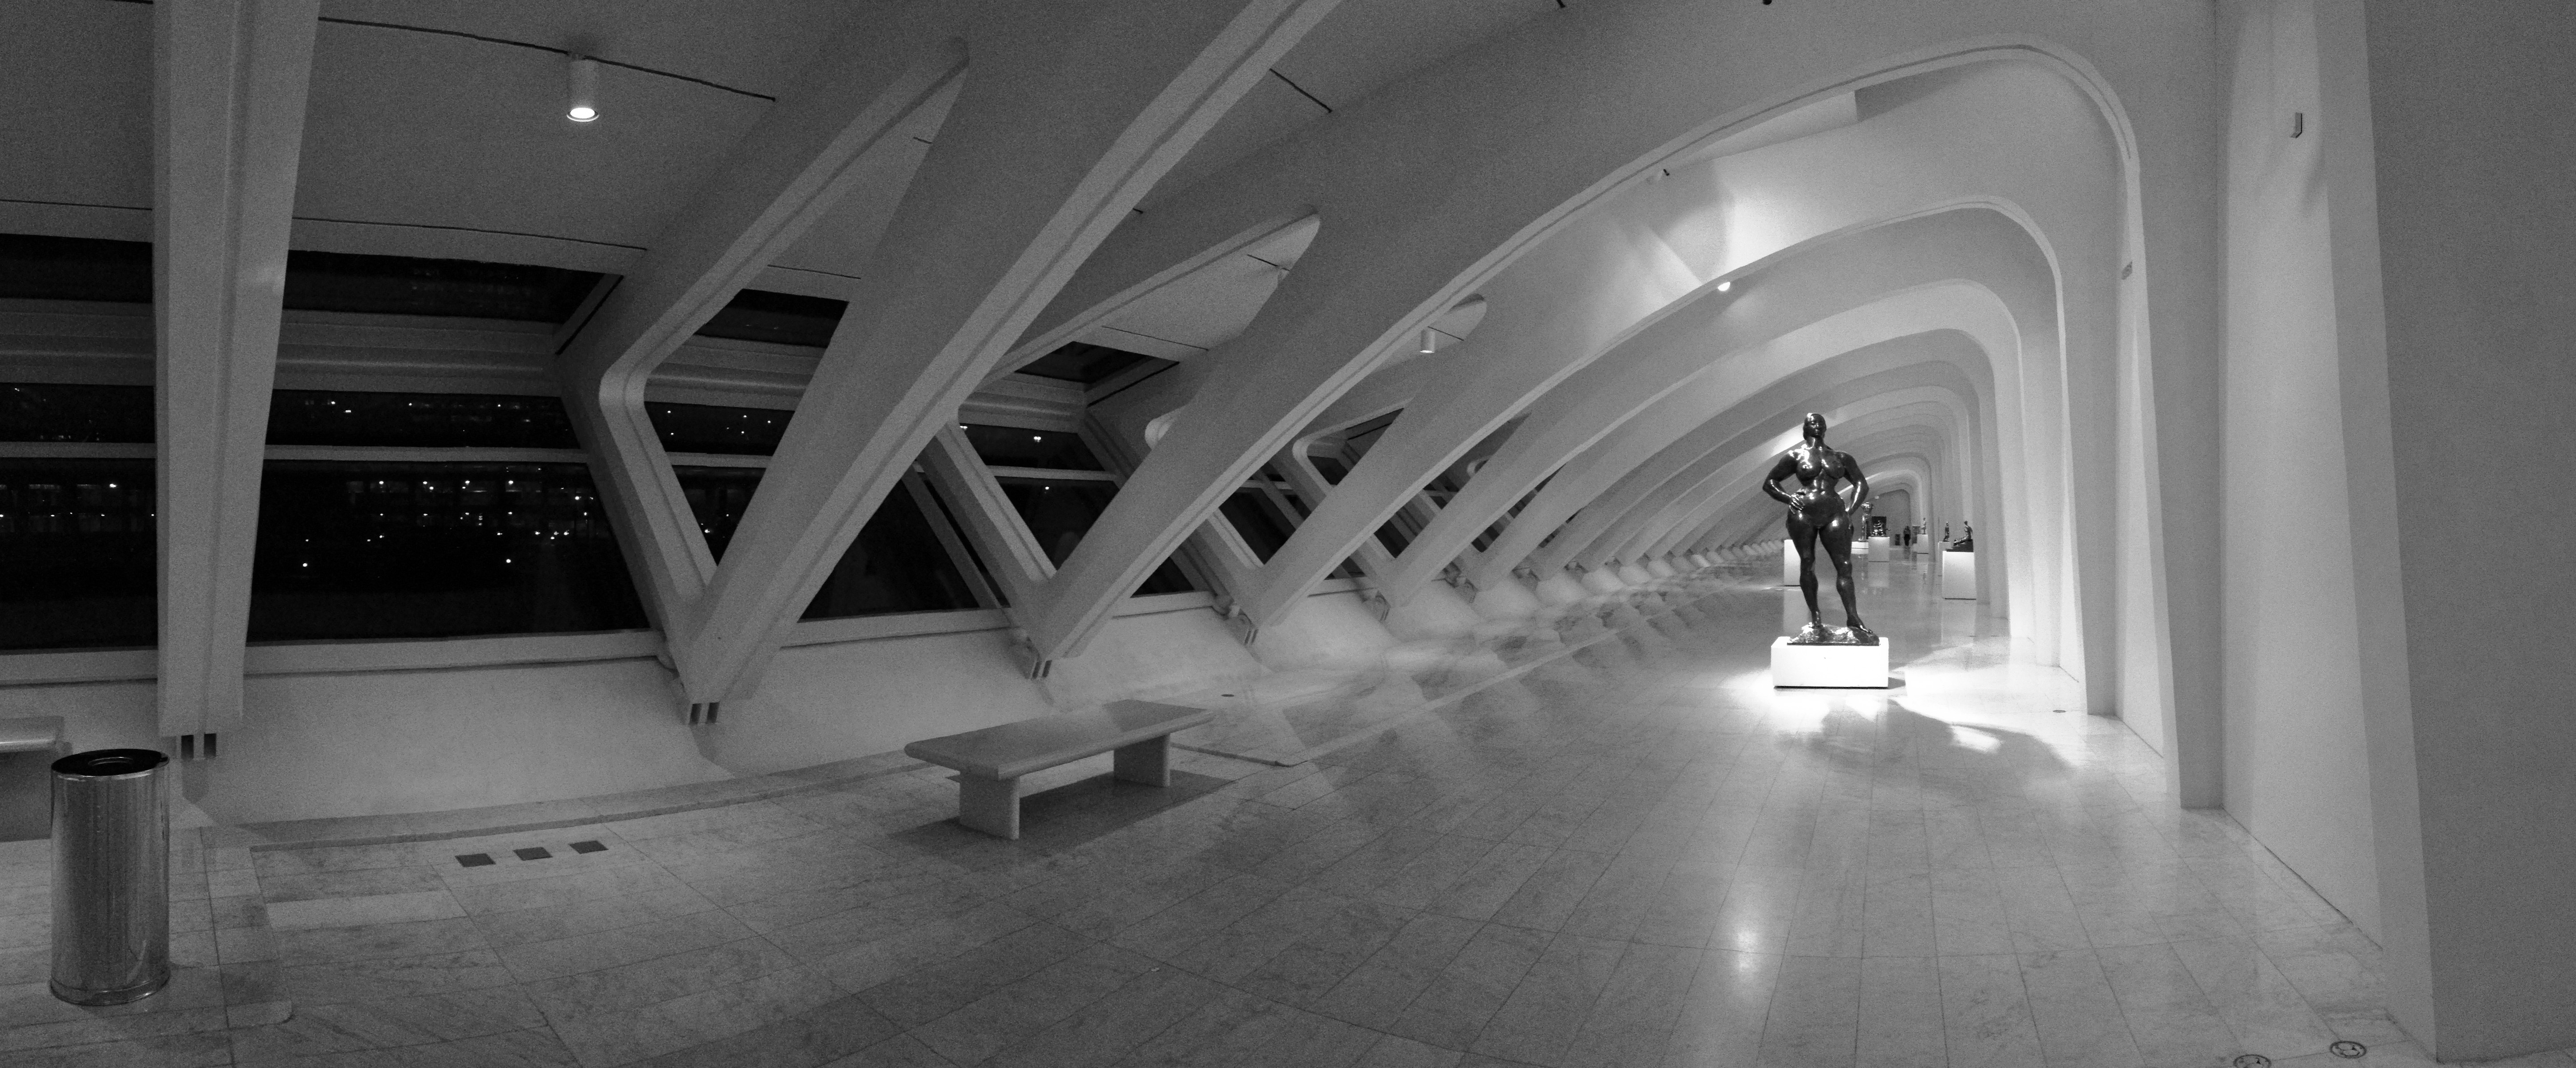 File:2012 Milwaukee Art Museum interior panorama 03.jpg ...